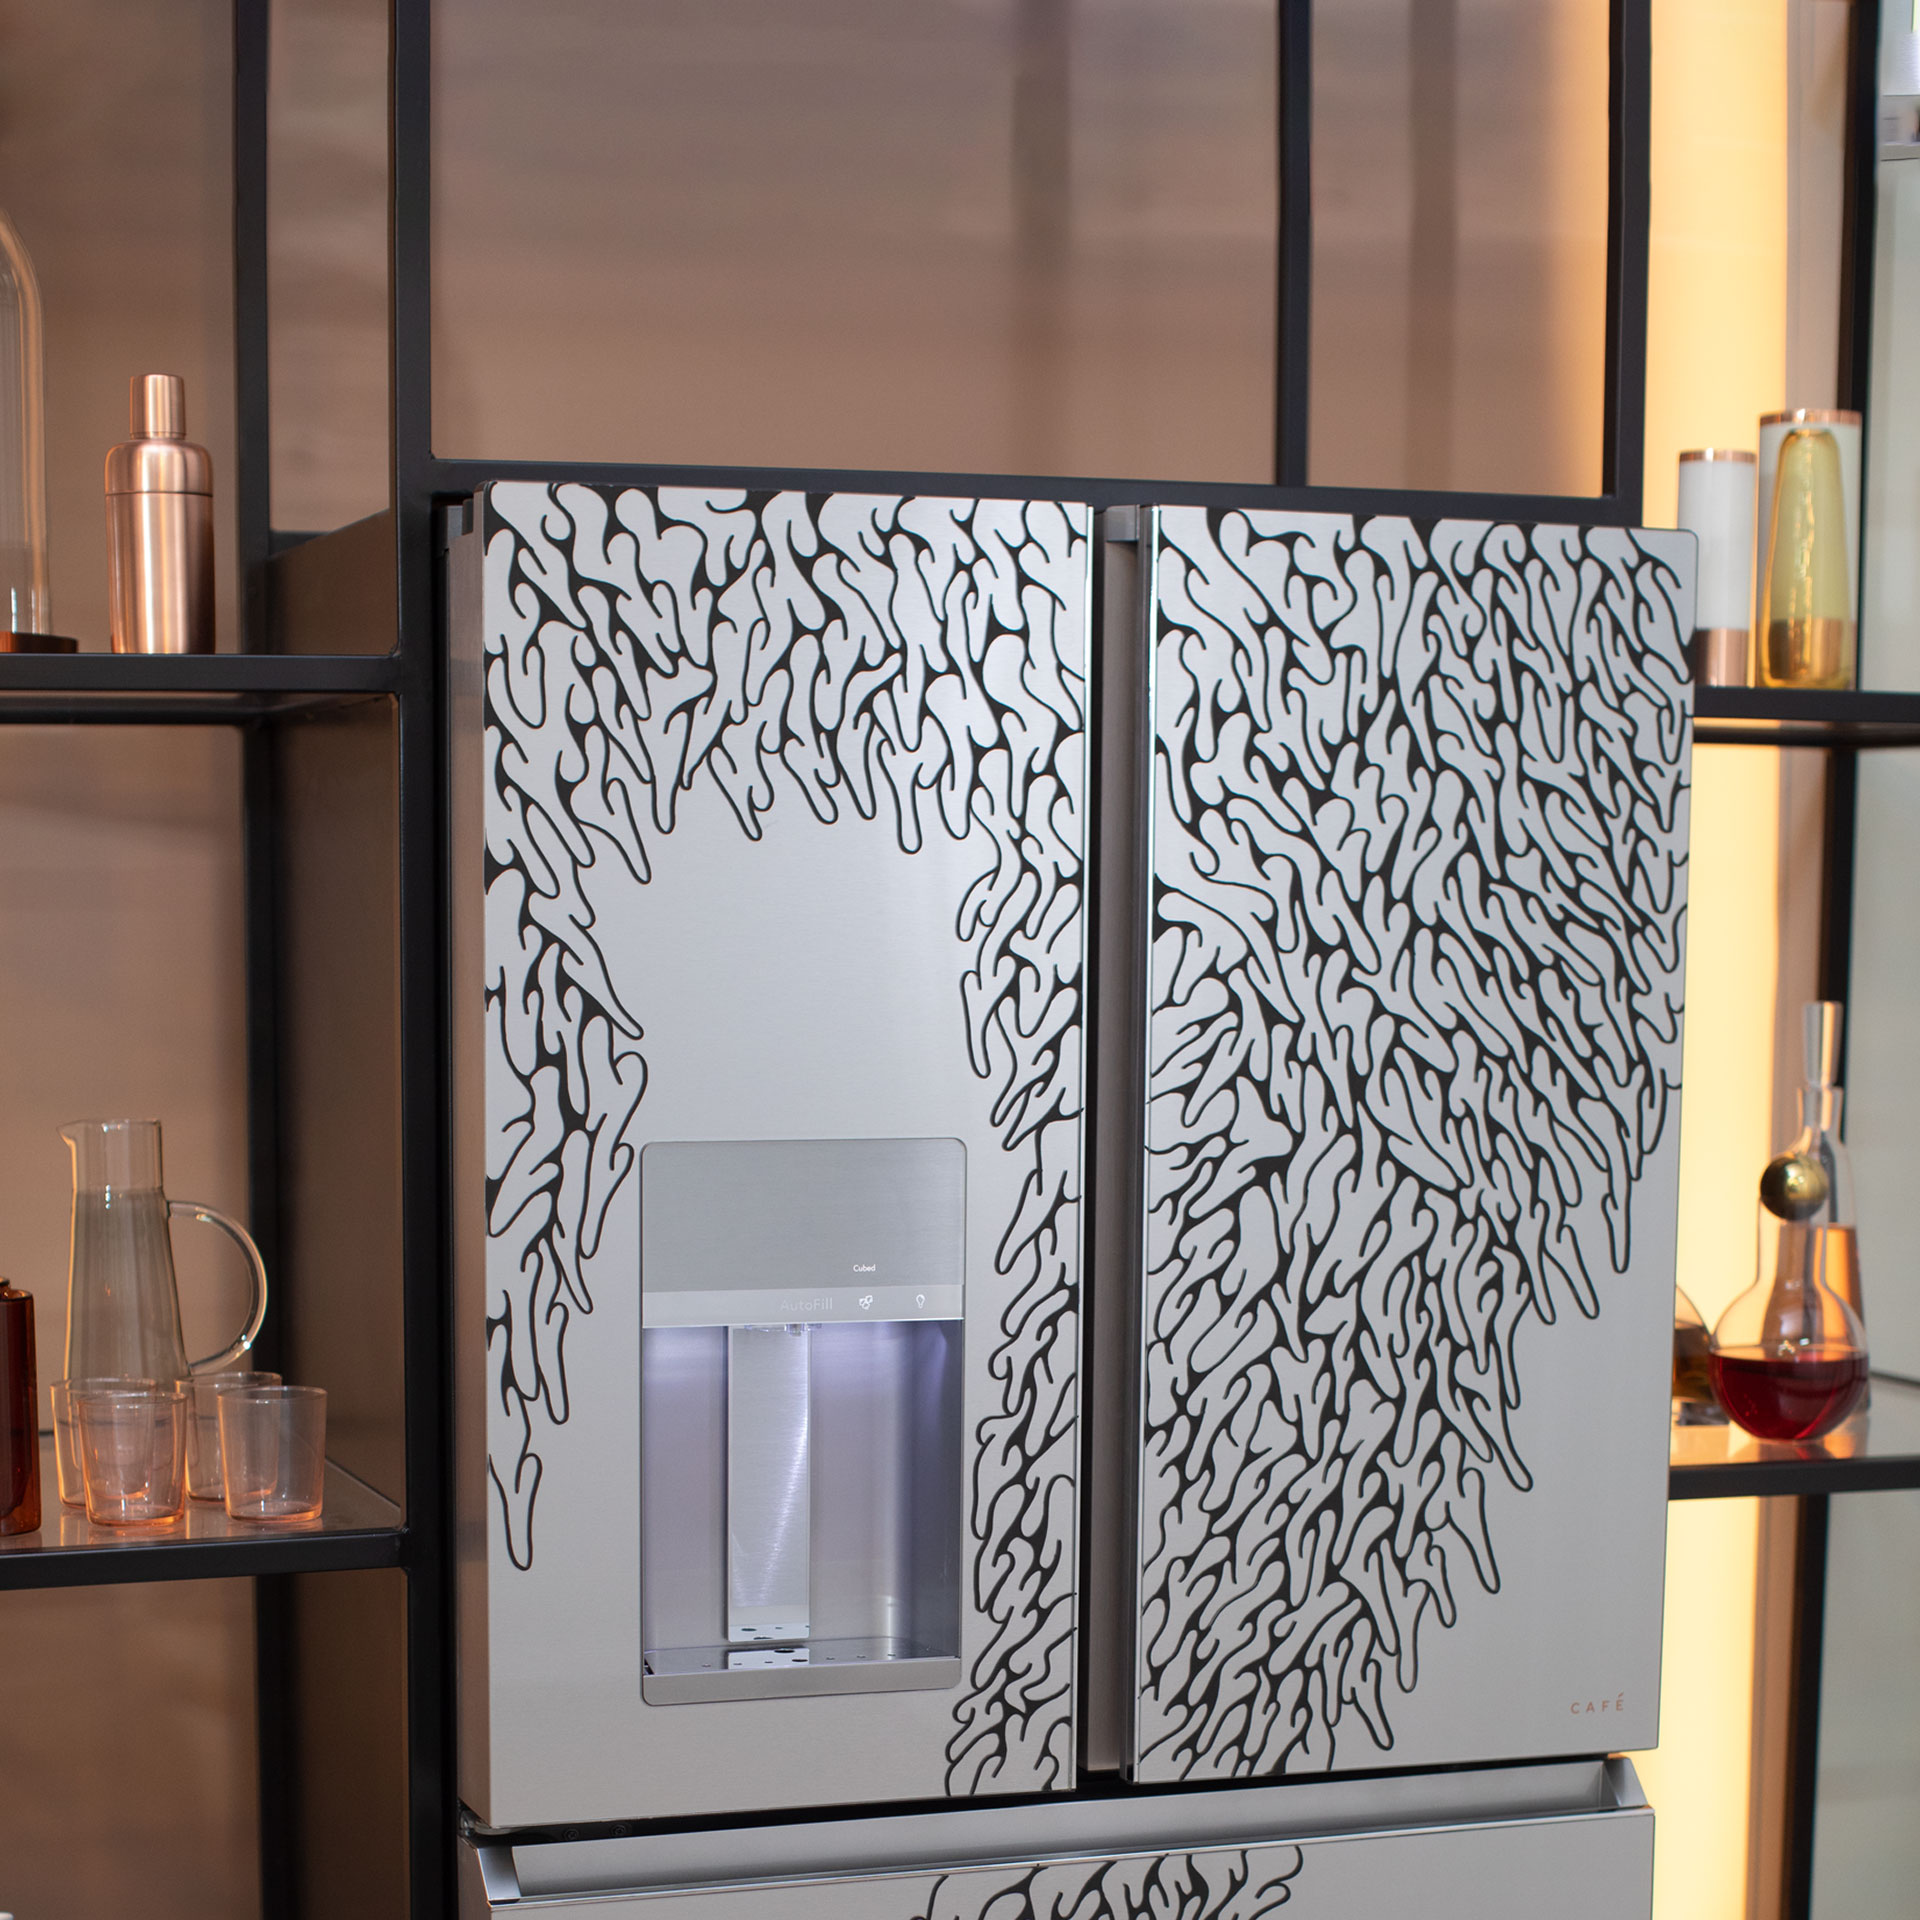 Modern glass refrigerator with artist drawing